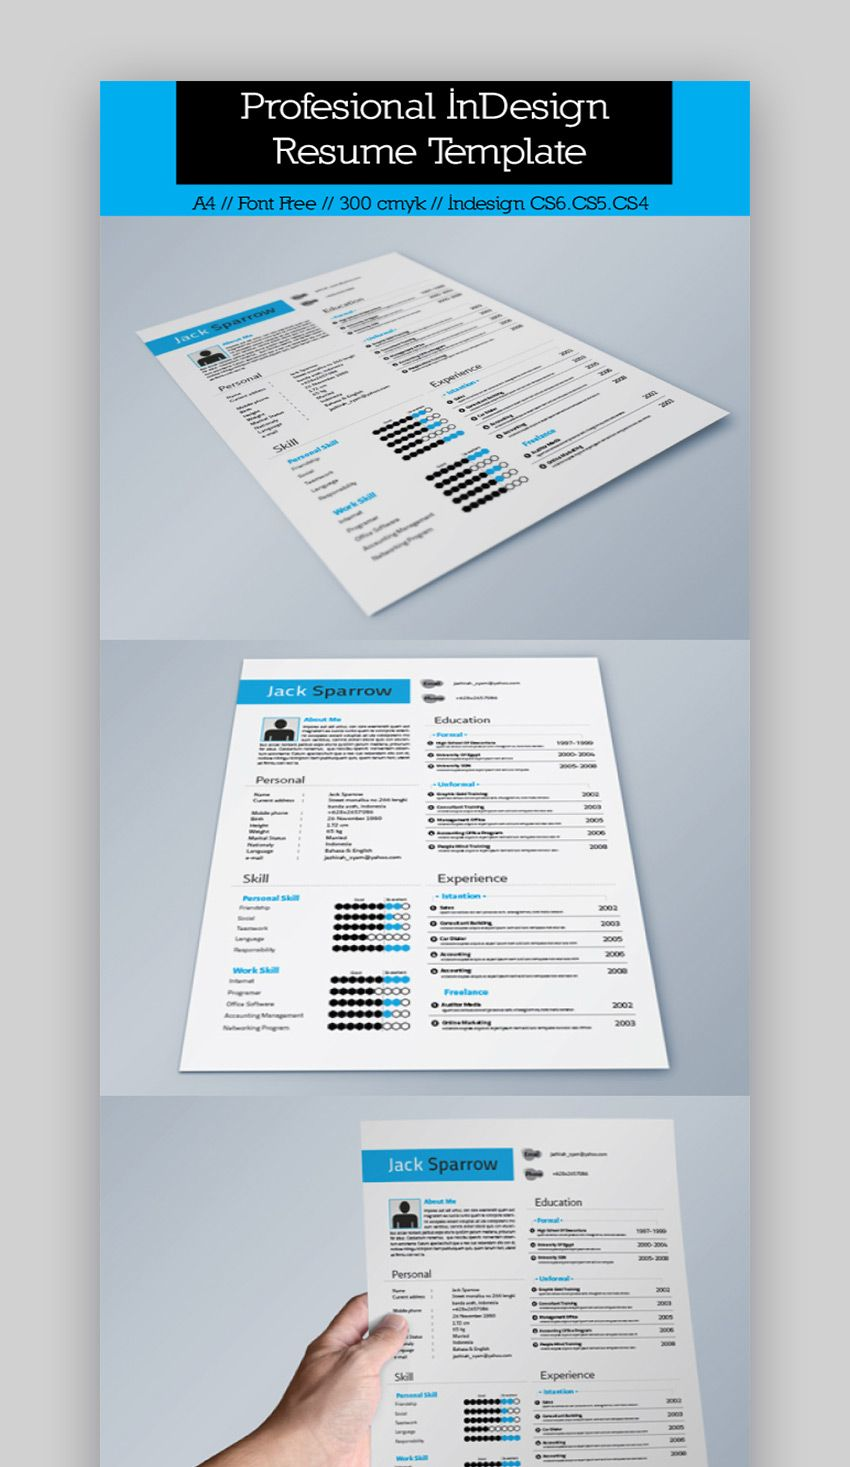 25+ Best InDesign Resume Templates (Free + Pro Downloads